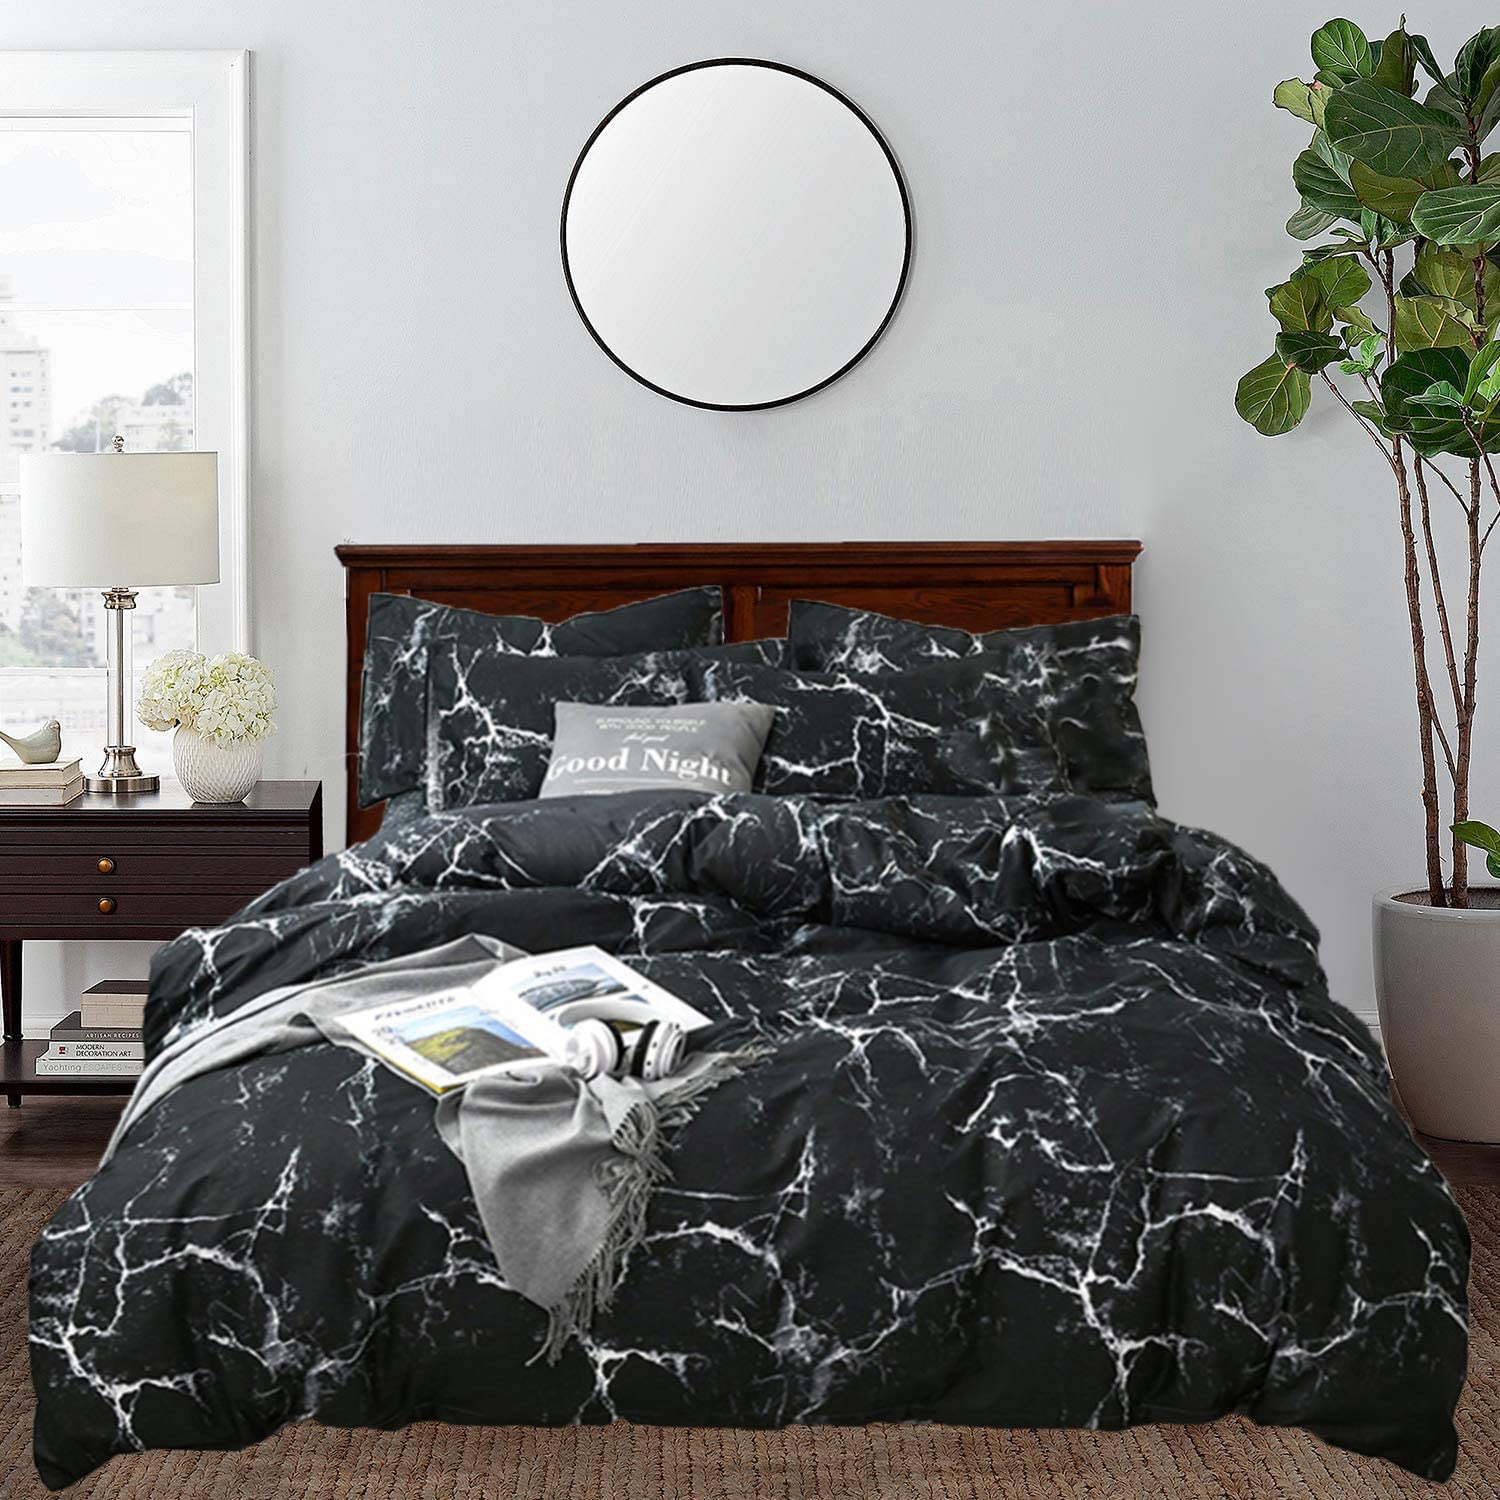 clothknow black marble comforter sets queen men boys bedding comforter full for adults teen quilt sets black white 3 pcs bedding comforter sets with 2